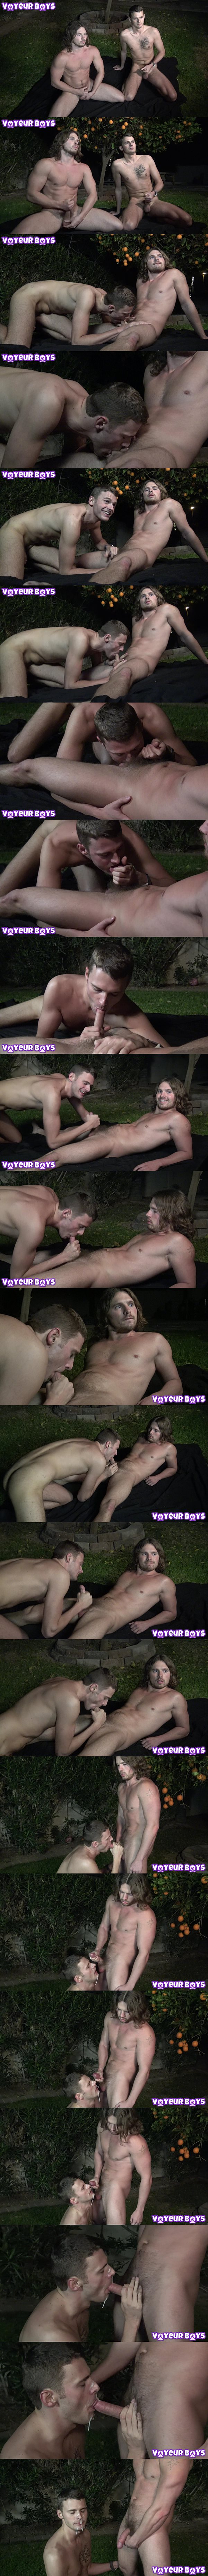 Hot straight jock Dave Slick sucks off Jay Bunny outside at Voyeurboys 01